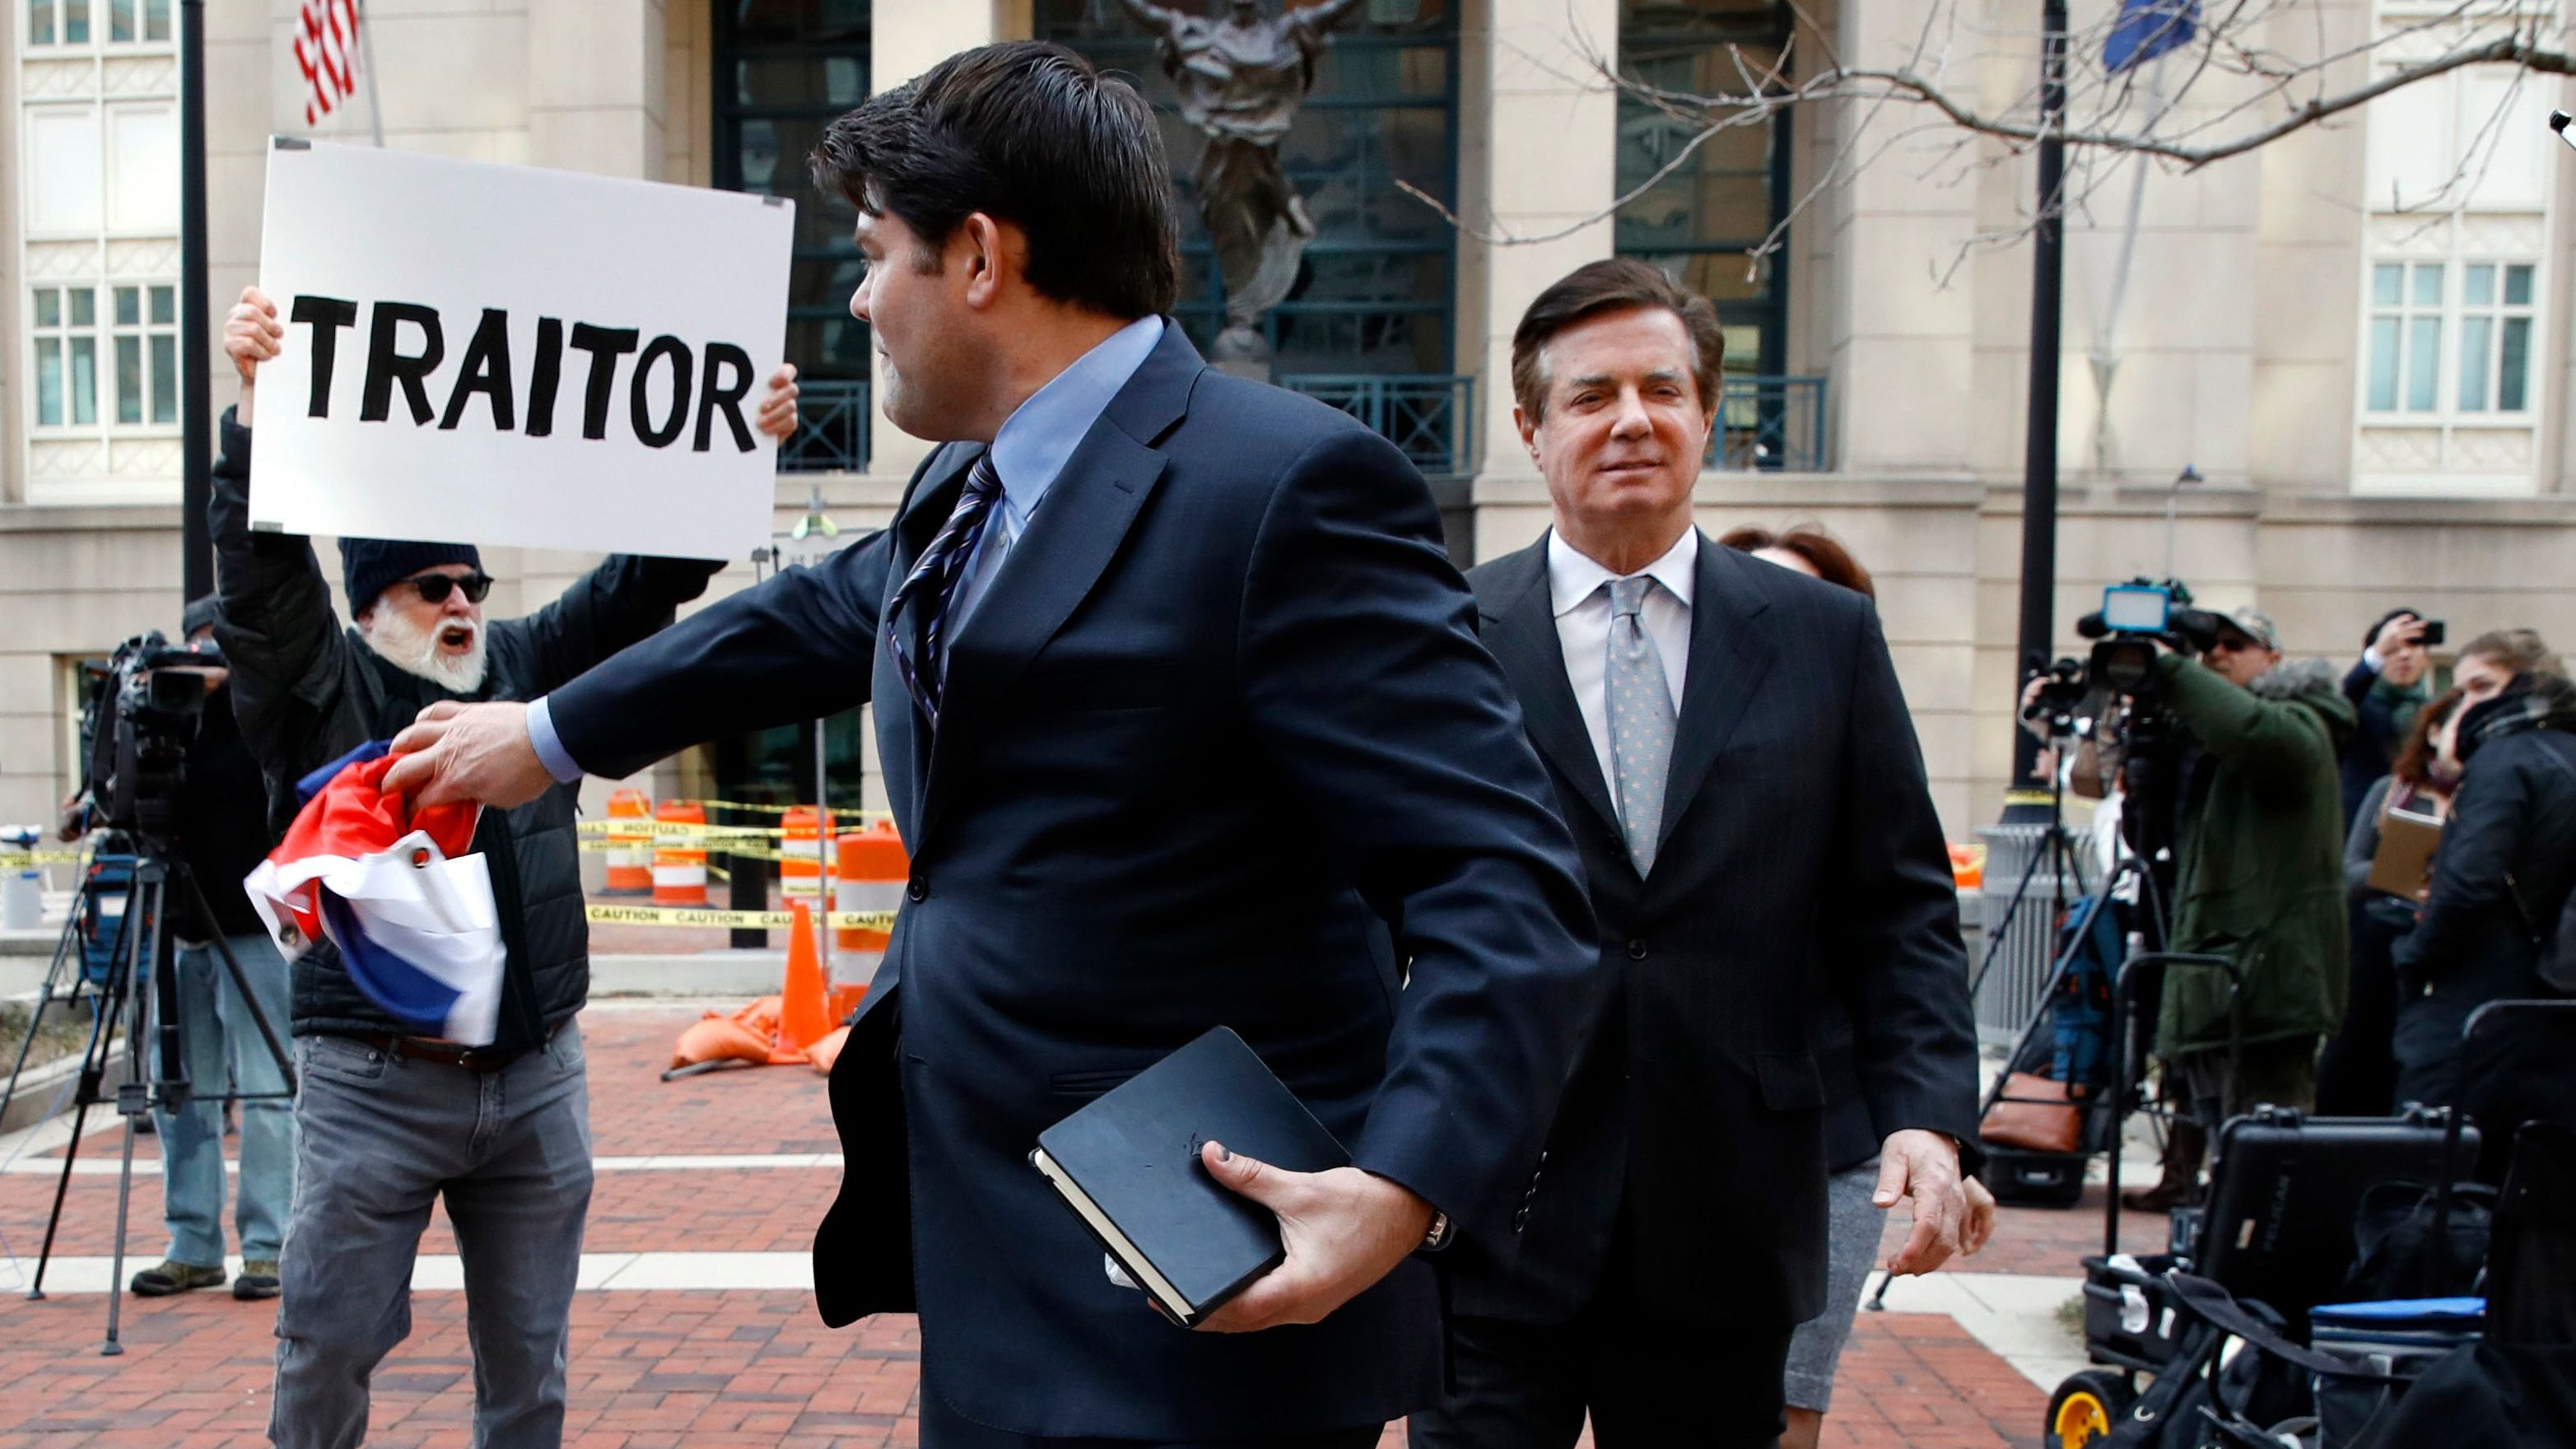 Where's Russian Federation  collusion? Mueller adds obstruction to Manafort indictment, charges Kiev businessman